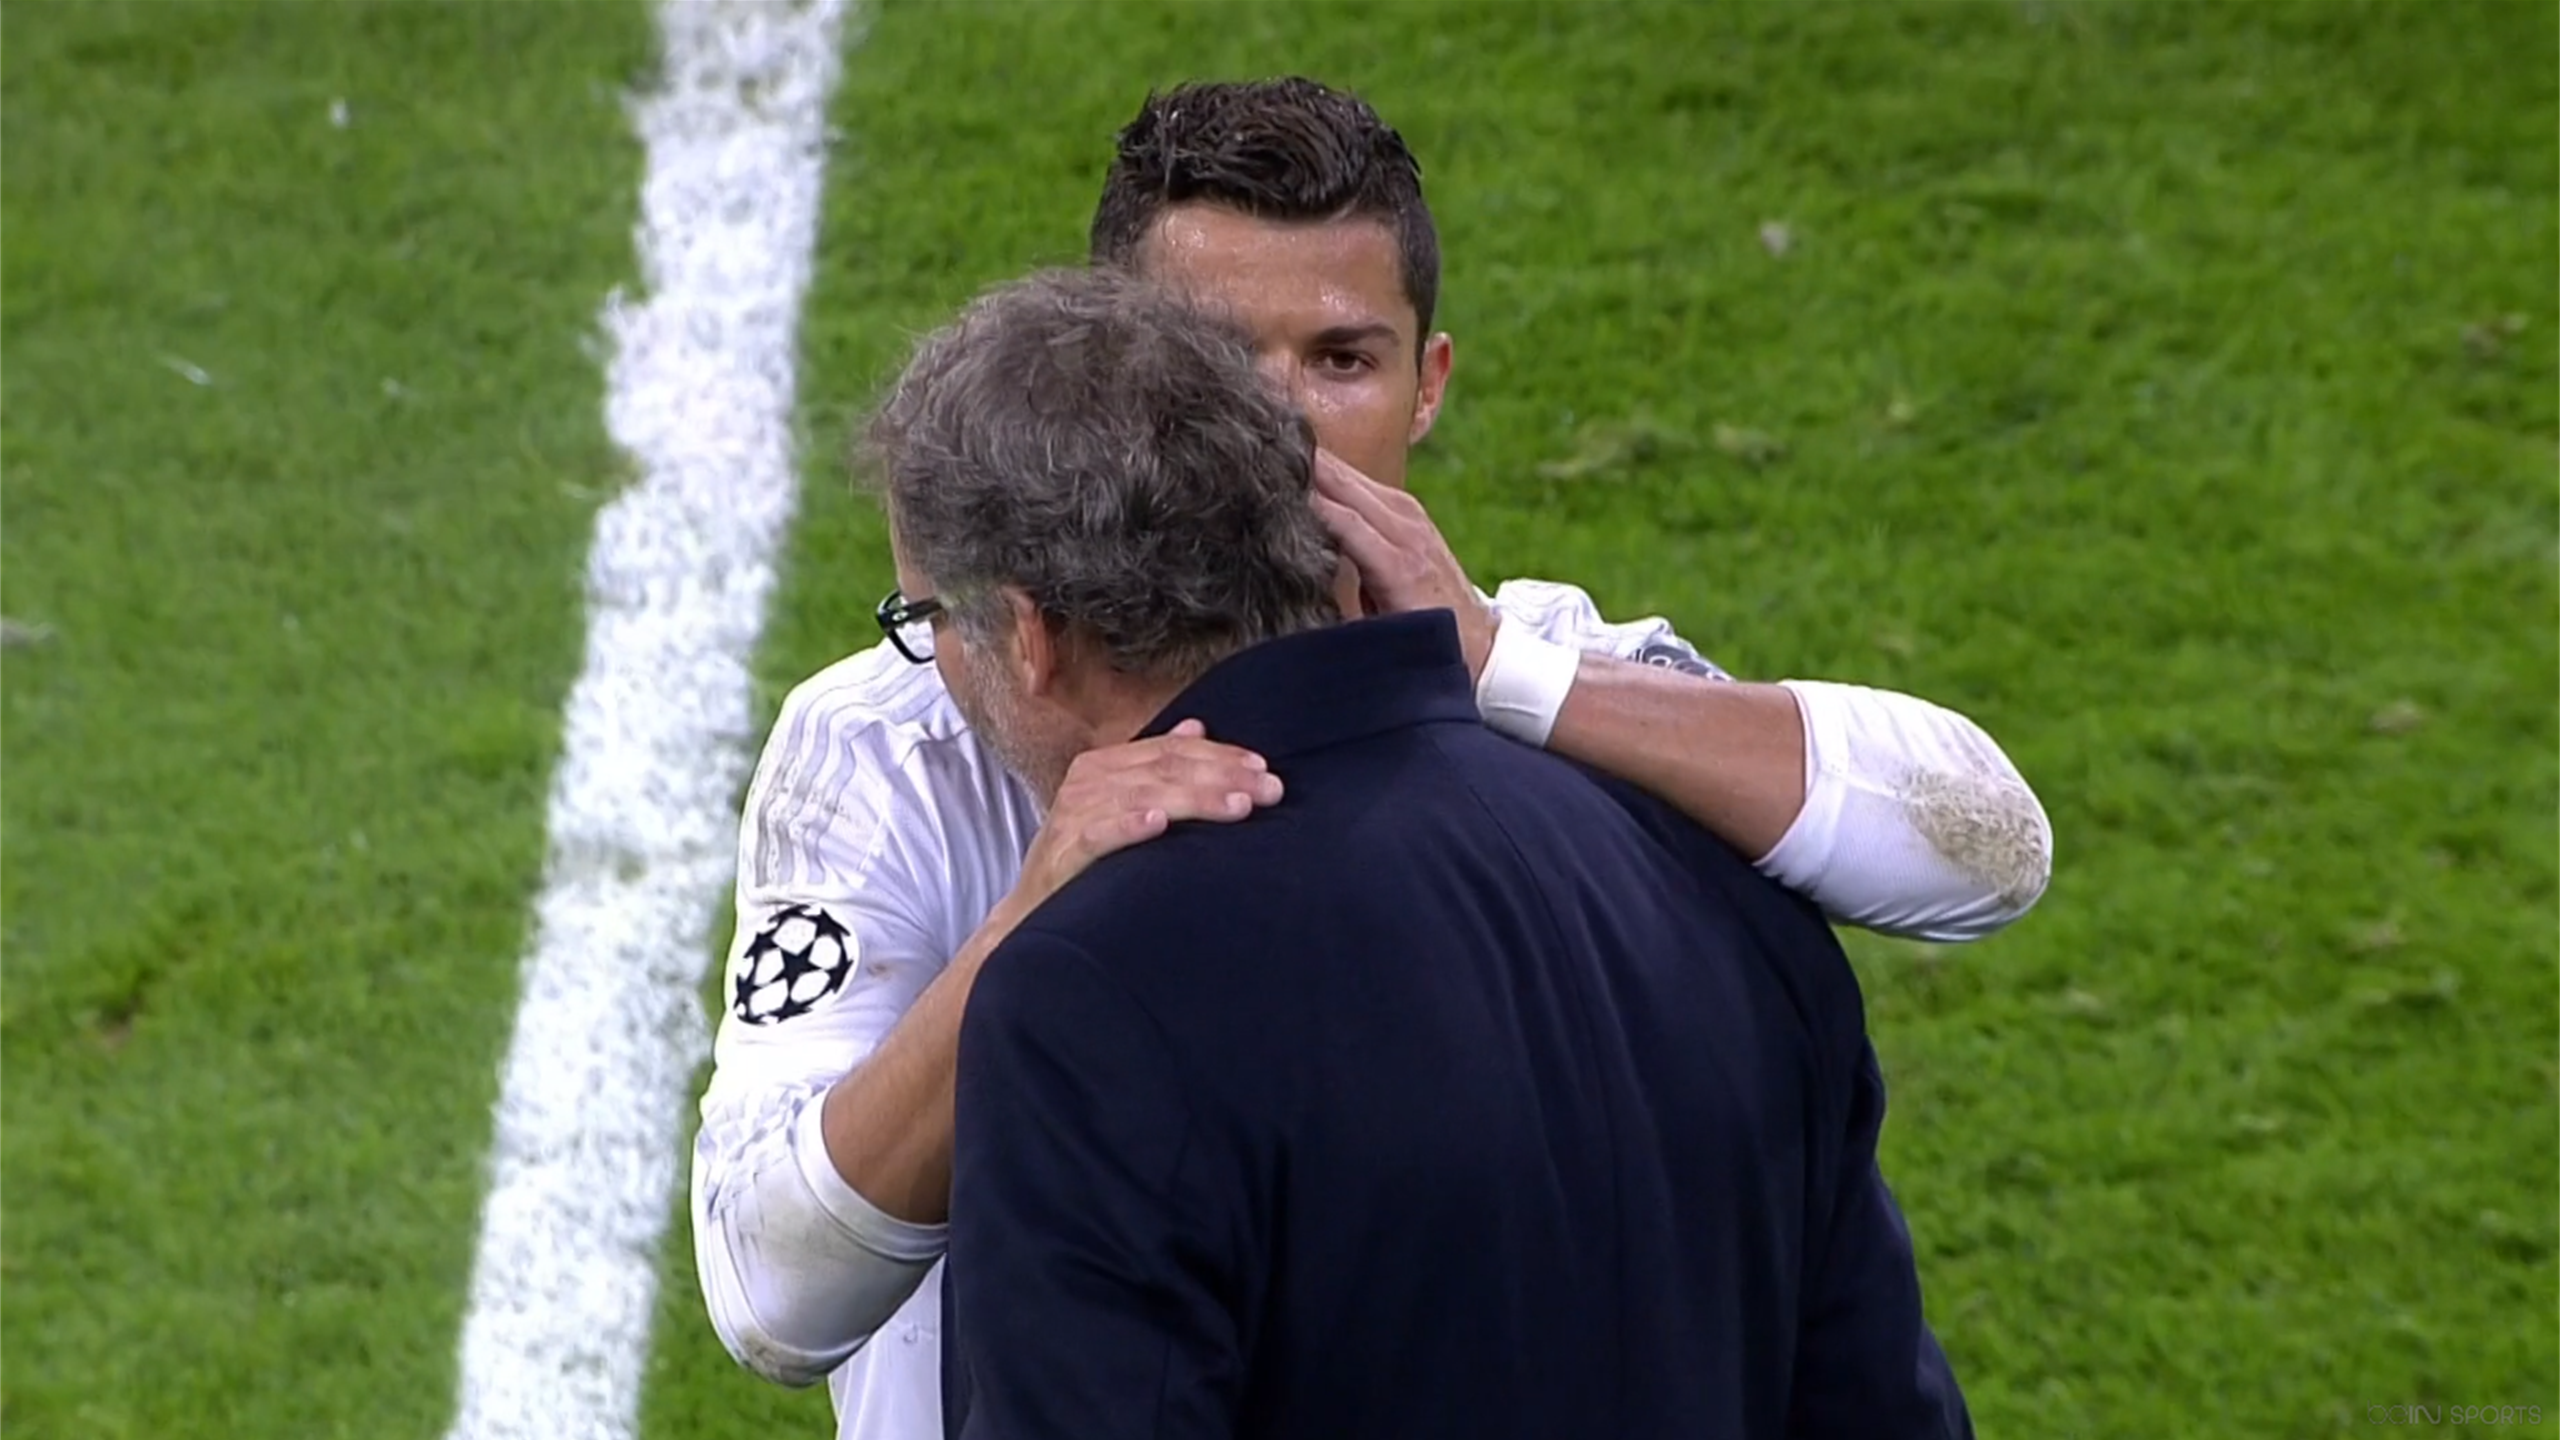 Cristiano Ronaldo told something to Laurent Blanc.